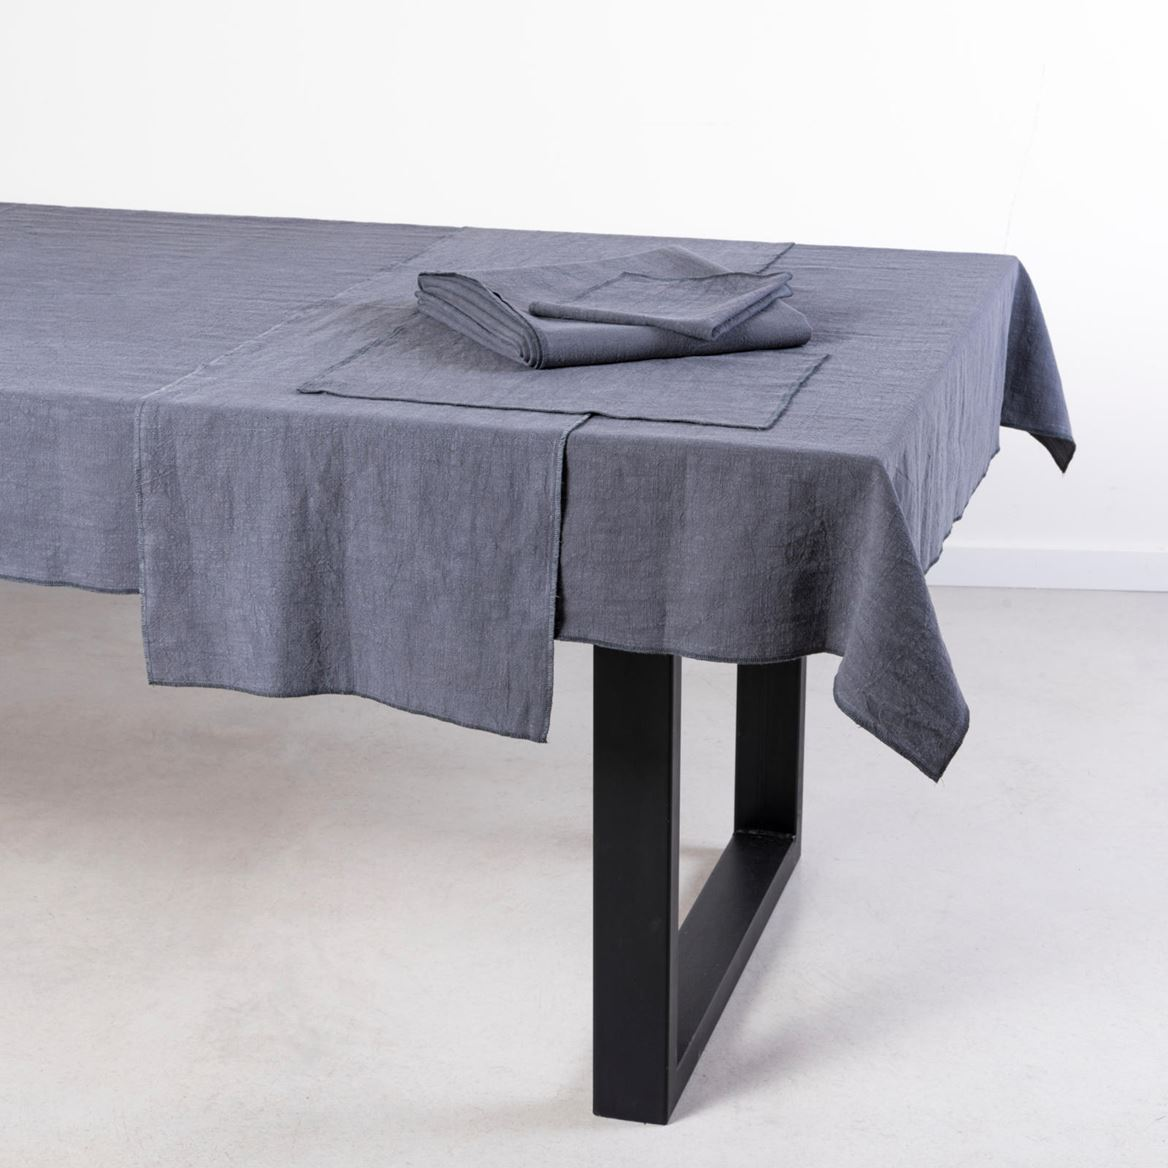 LUXALIN Mantel individual gris oscuro An. 30 x L 45 cm_luxalin-mantel-individual-gris-oscuro-an--30-x-l-45-cm